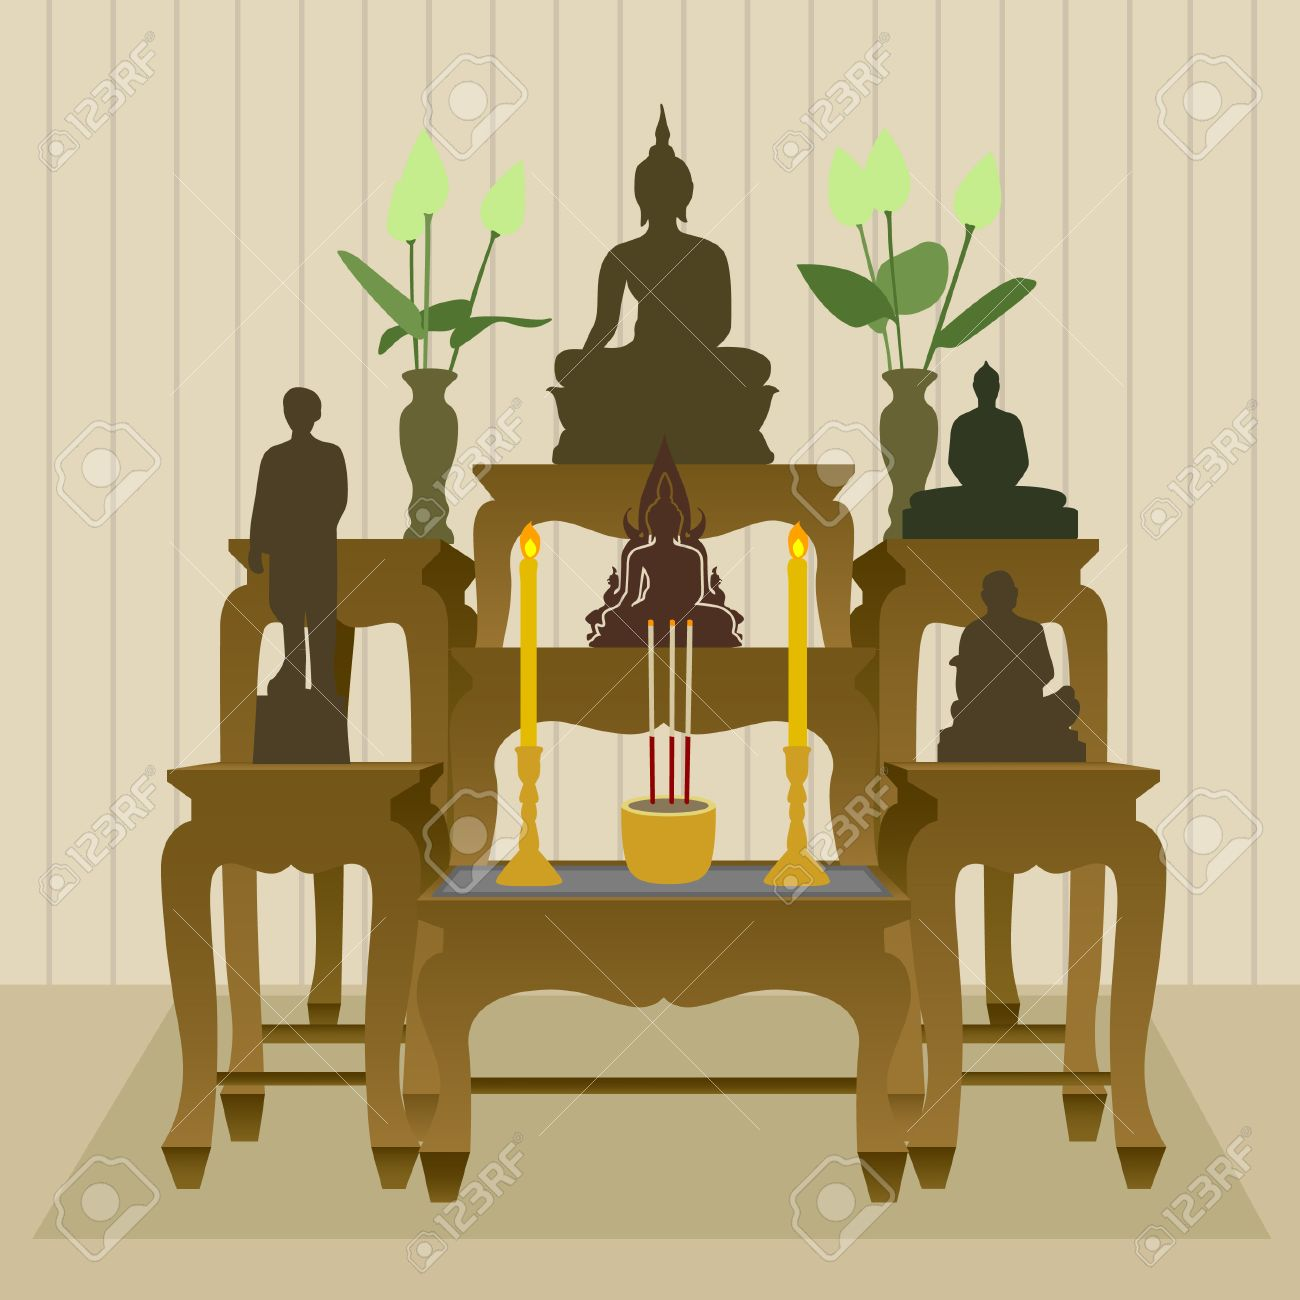 Thai Buddhist Altar Table Set Royalty Free Cliparts, Vectors, And ...